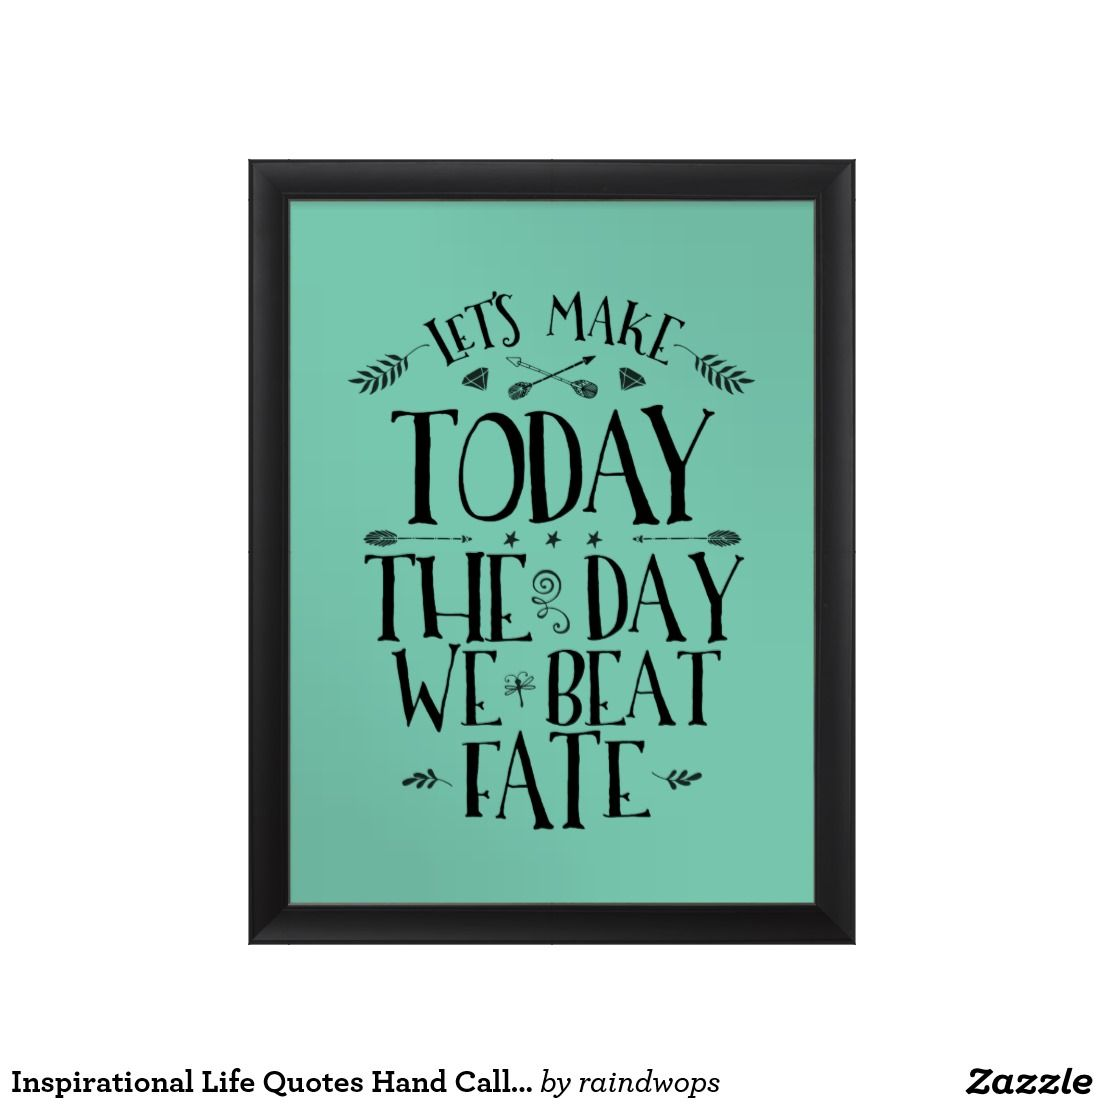 Life Quote Poster Inspirational Life Quotes Hand Calligraphy Poster  Standard Frame